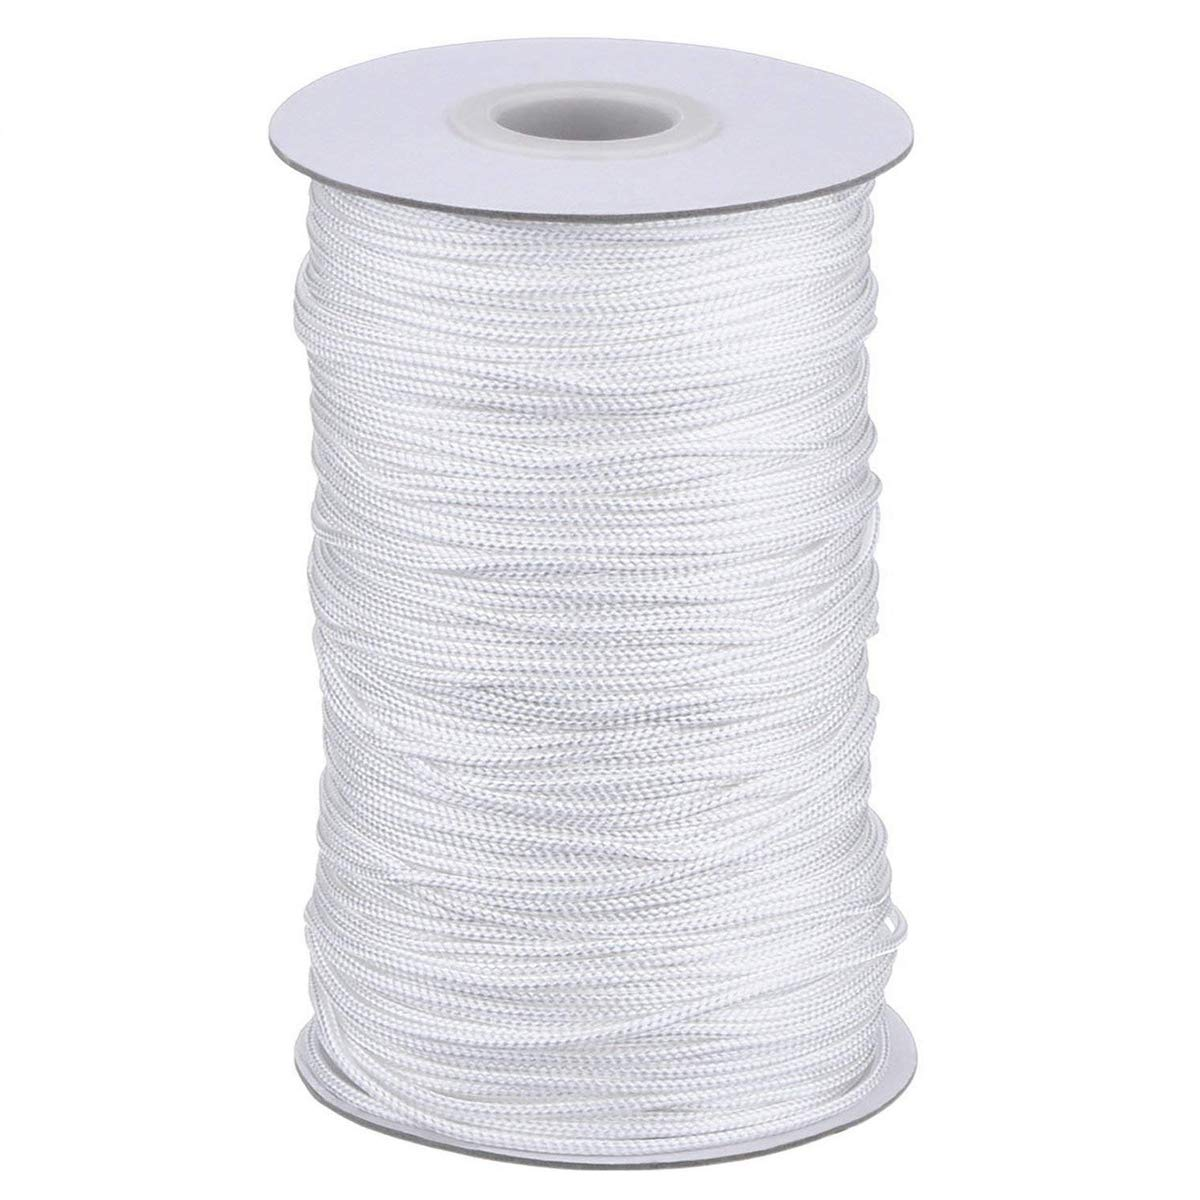 Roll of 100 Yards Shade Cord (Or Lift Cord) 1.8 mm irtree 4337027908